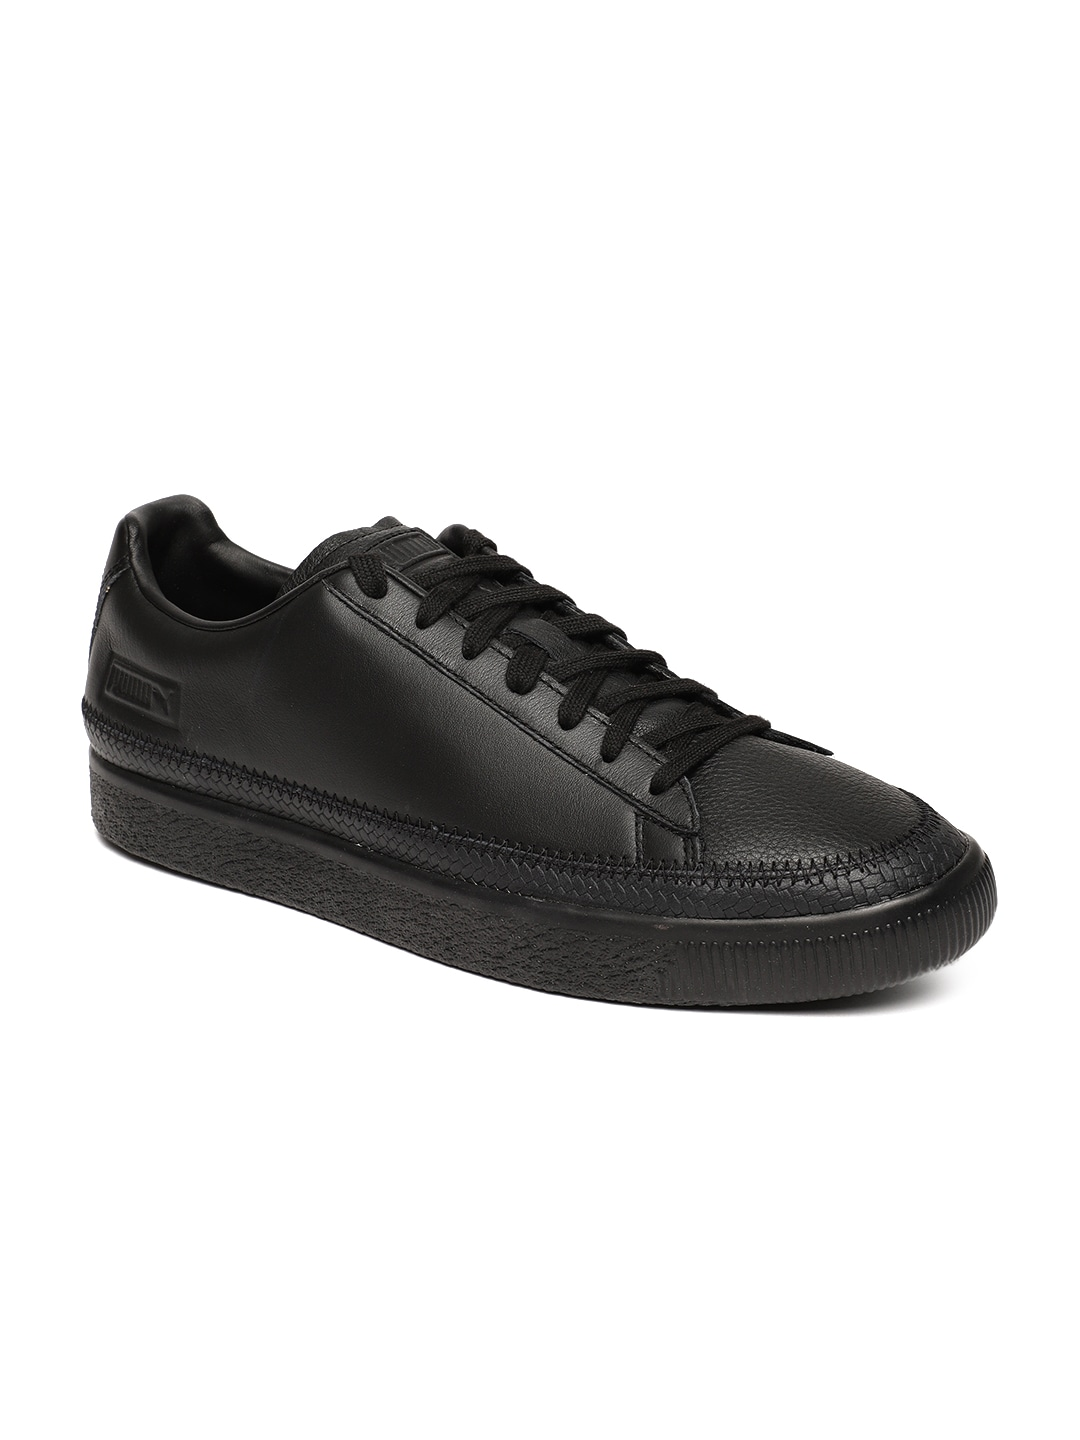 e233d926c2f3 Casual Shoes For Men - Buy Casual   Flat Shoes For Men